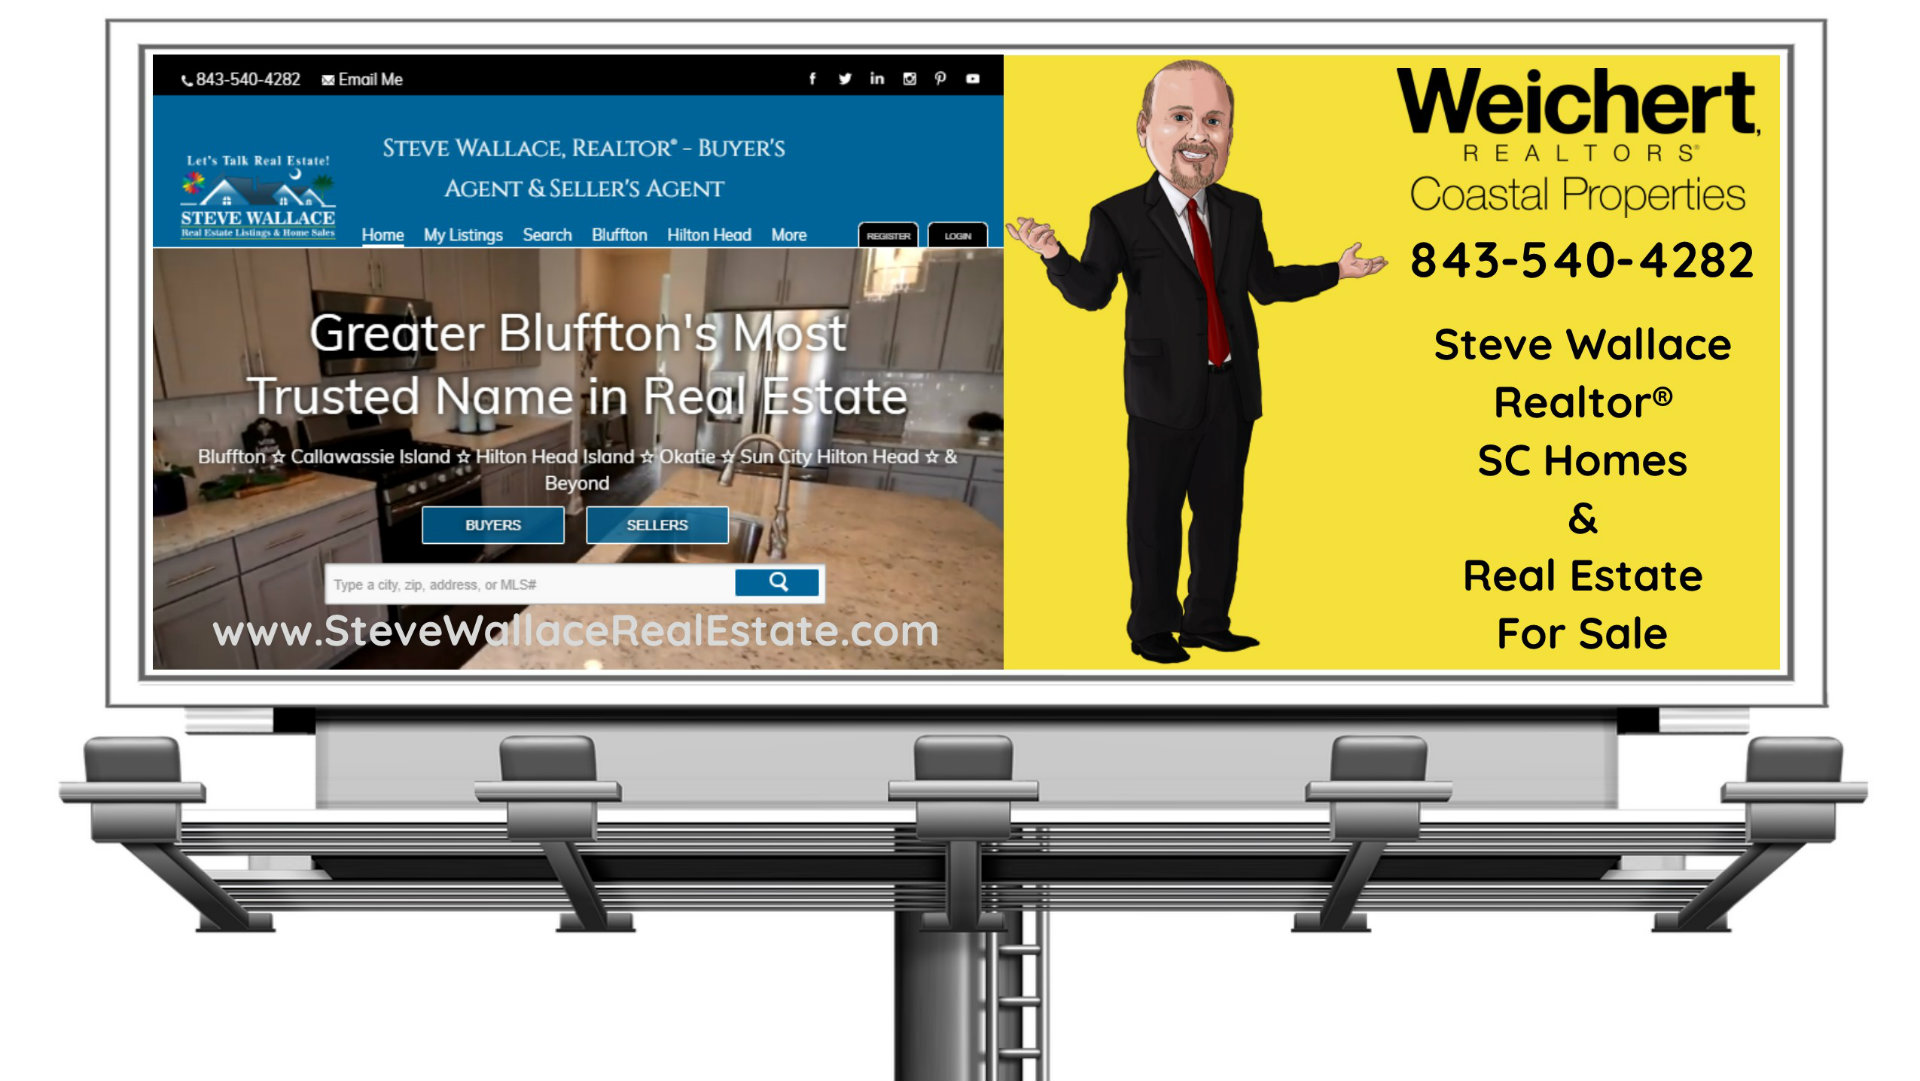 South Carolina Real Estate, Billboard, Trusted Name, SC Homes for Sale, Steve Wallace